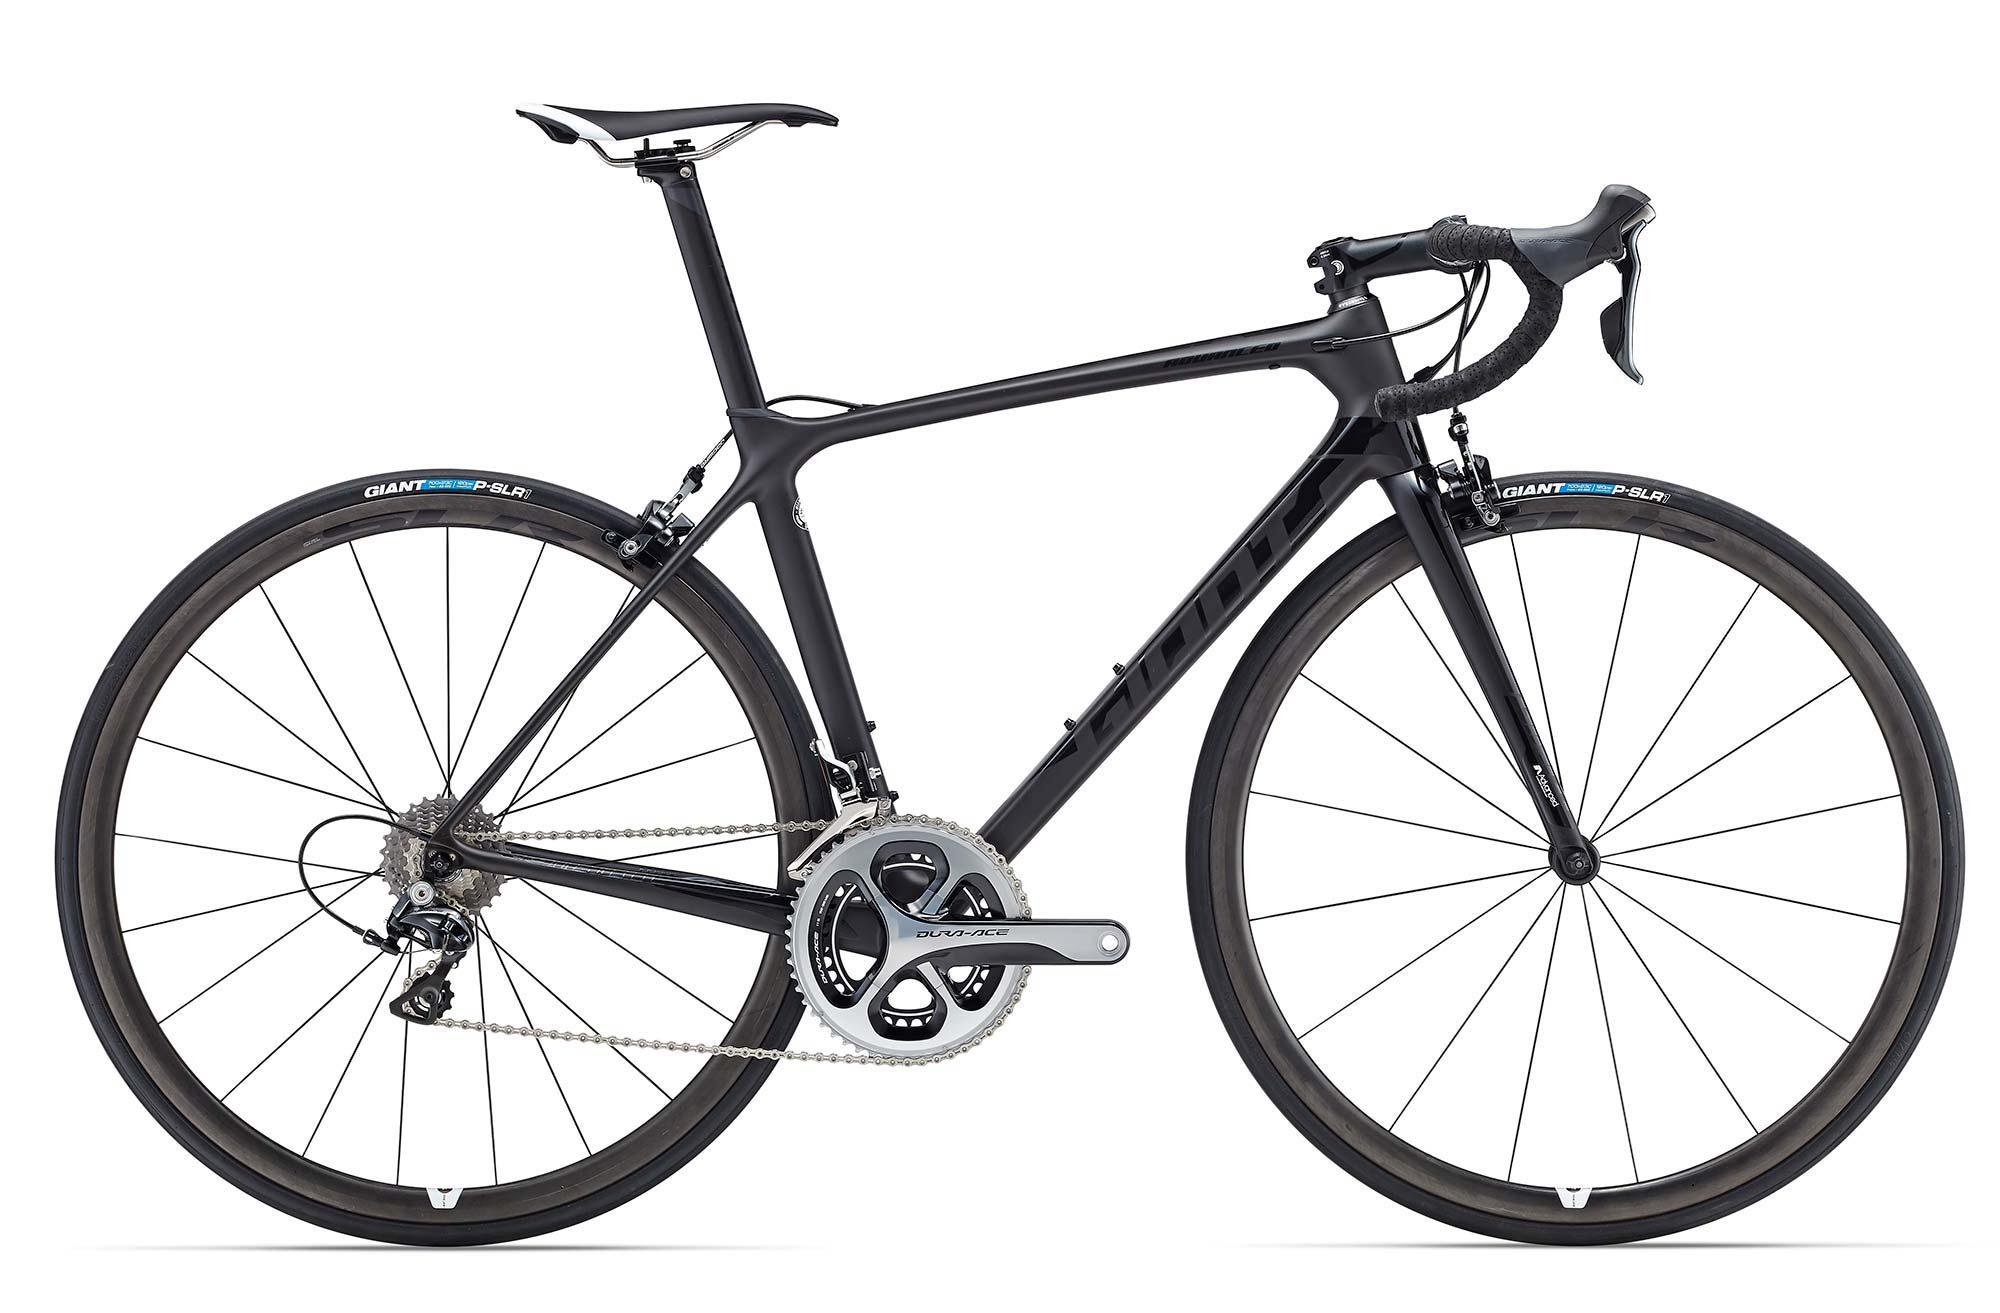 Giant Tcr Advanced Pro 0 Ex Demo Carbon Road Bike